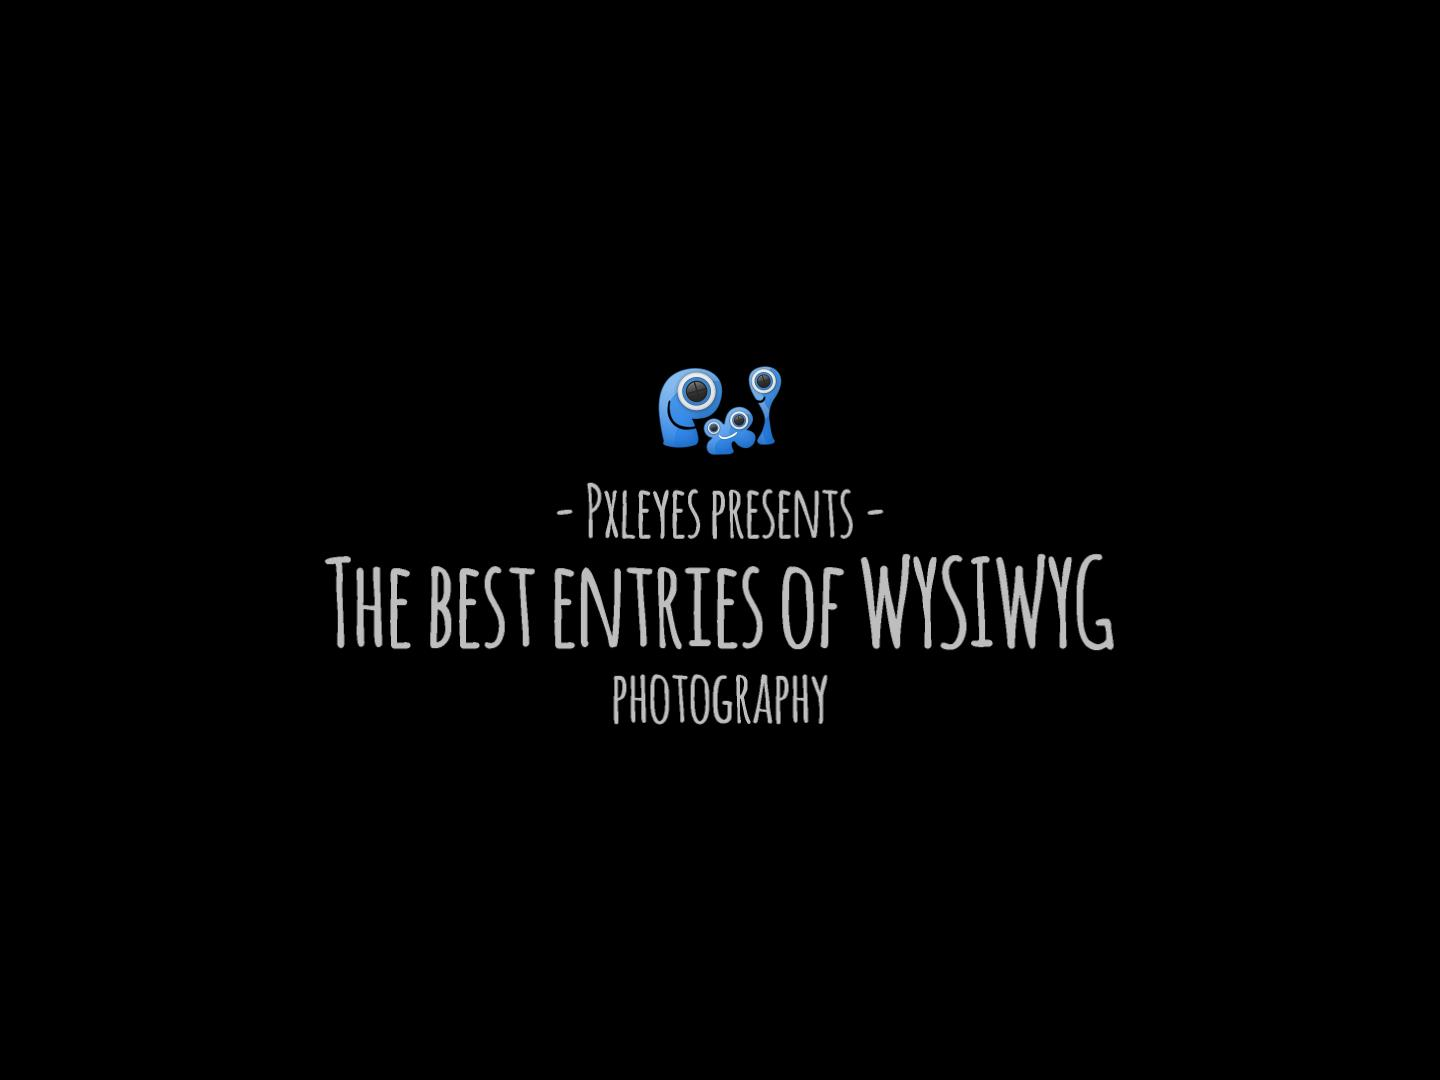 The best entries of WYSIWYG